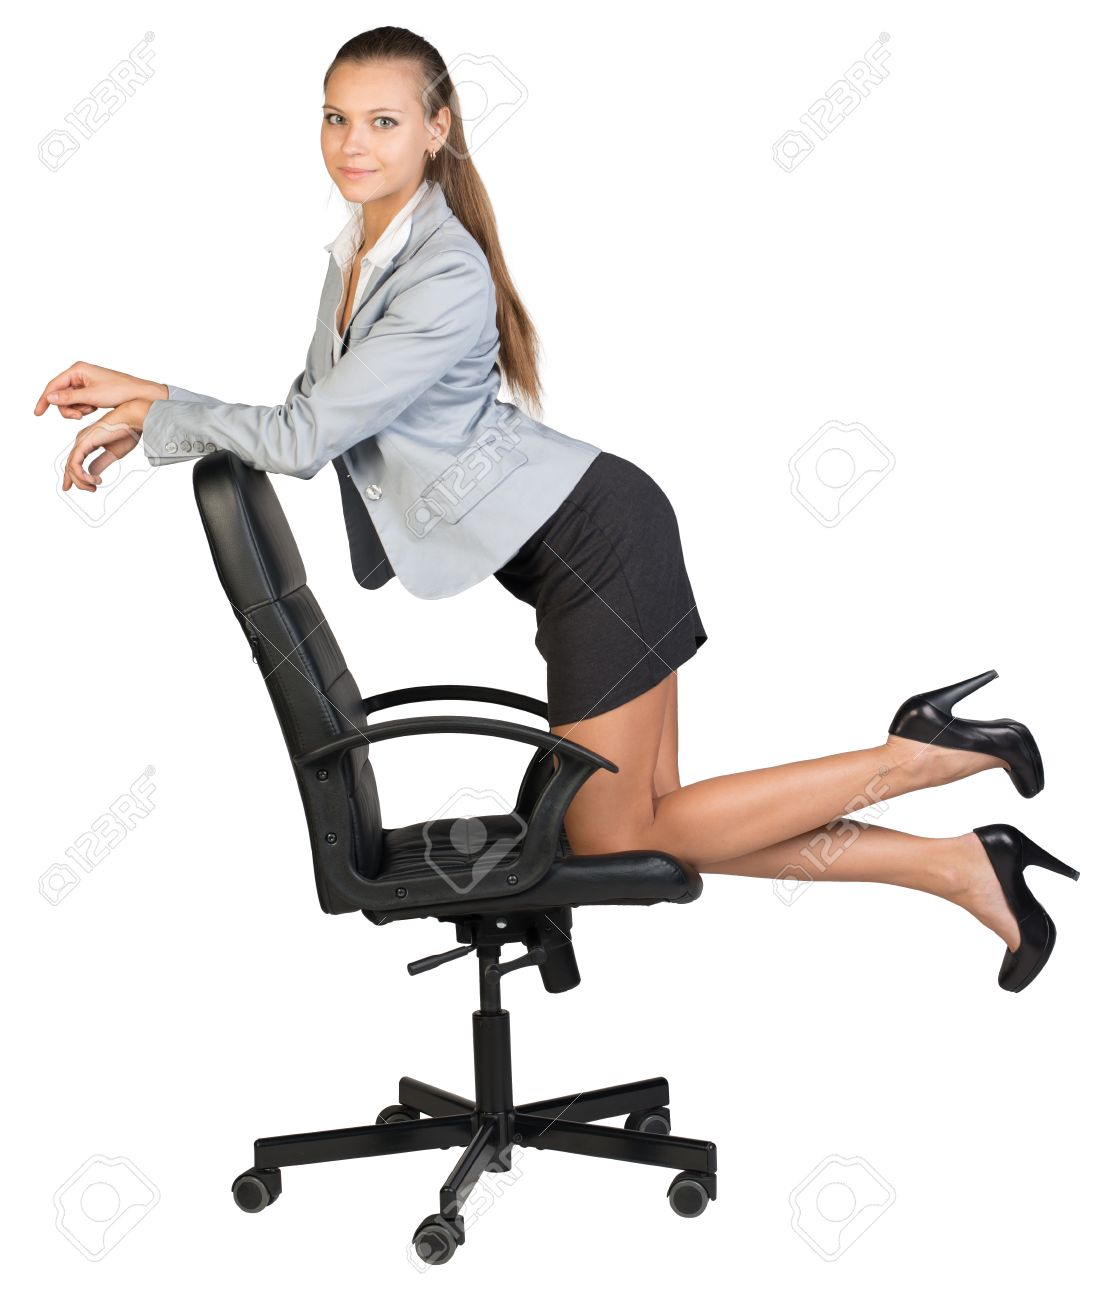 businesswoman kneeling on office chair her arms on chair back